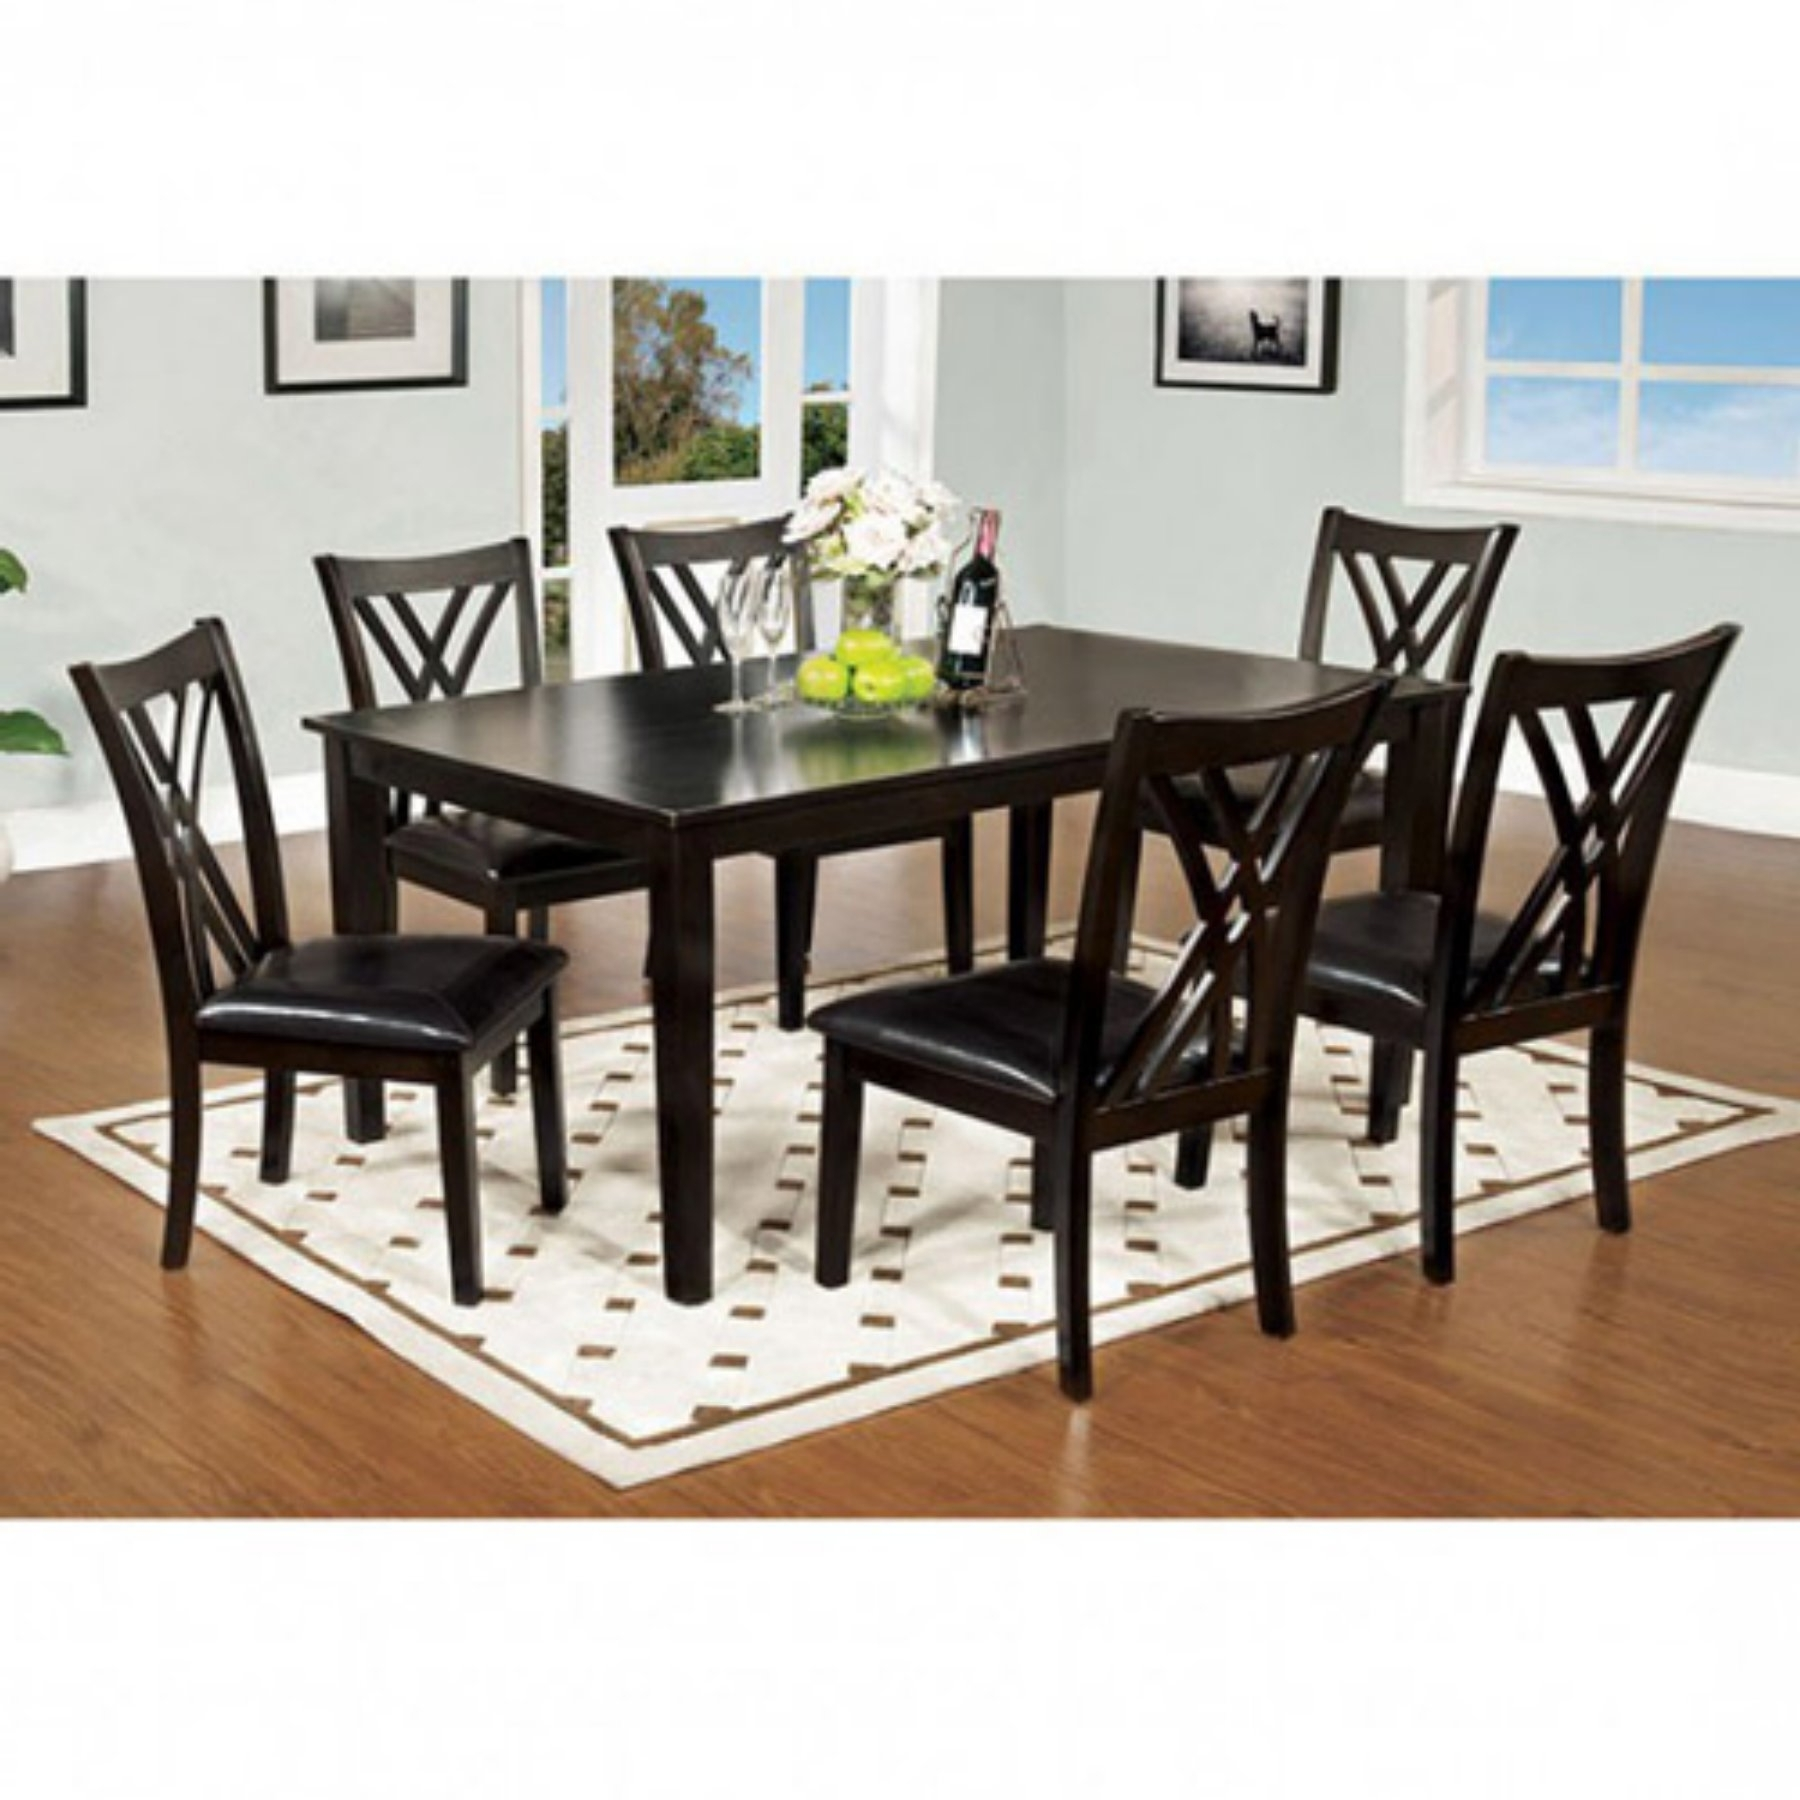 Benzara Springhill Enticing 7 Piece Rectangular Dining Table Set In For Famous Market 7 Piece Dining Sets With Host And Side Chairs (View 5 of 25)